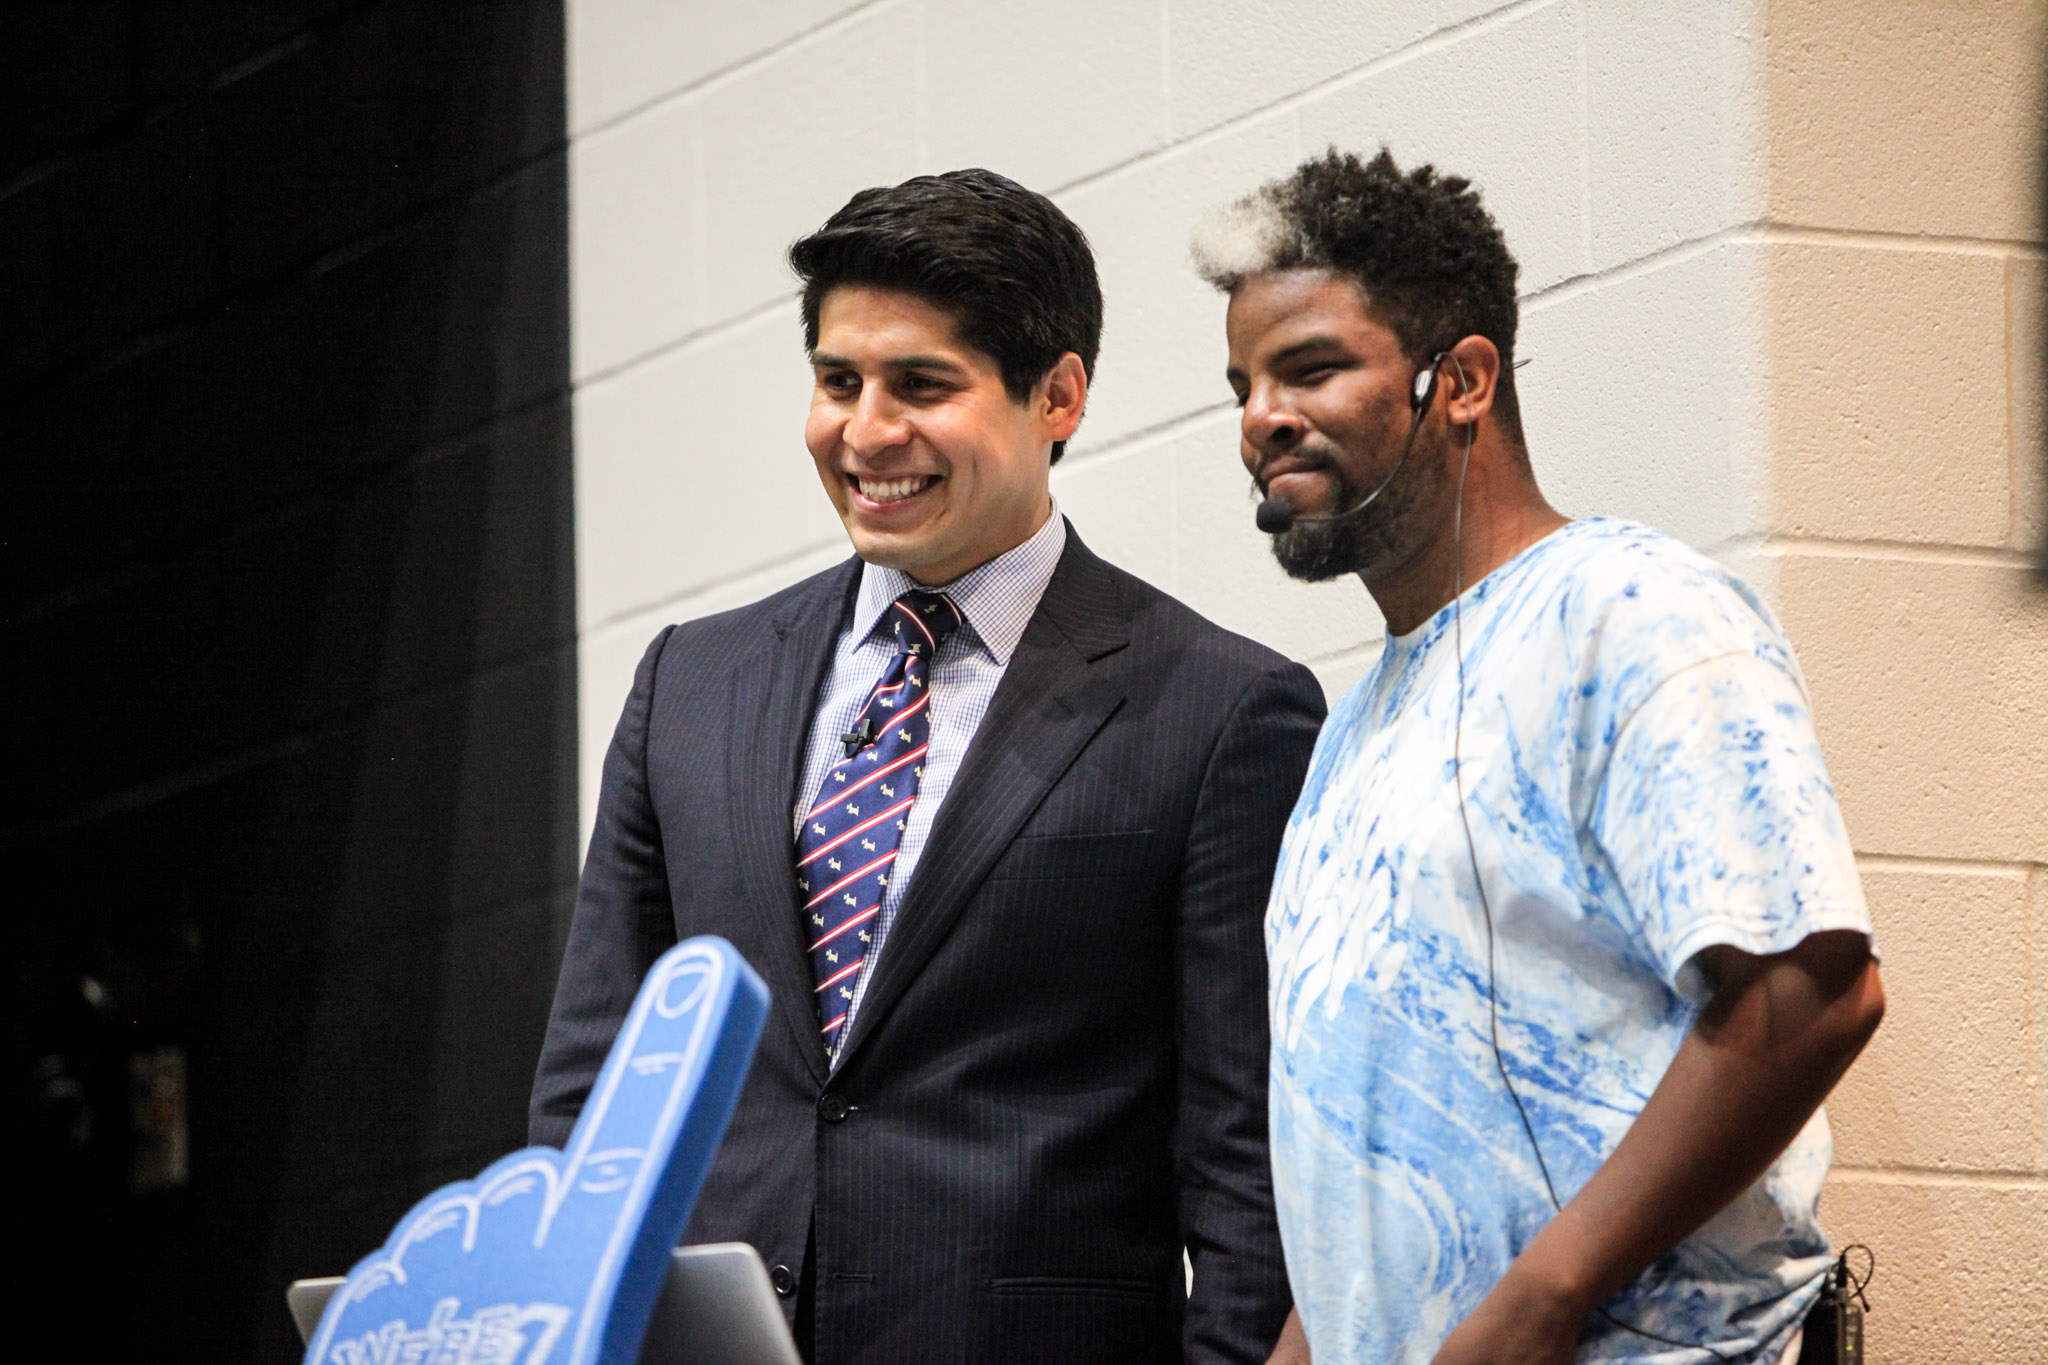 Councilman Rey Saldaña (D4) and South San Antonio High School student DJ Christian Forney celebrate at Forney's photo at the surprise graduation event.